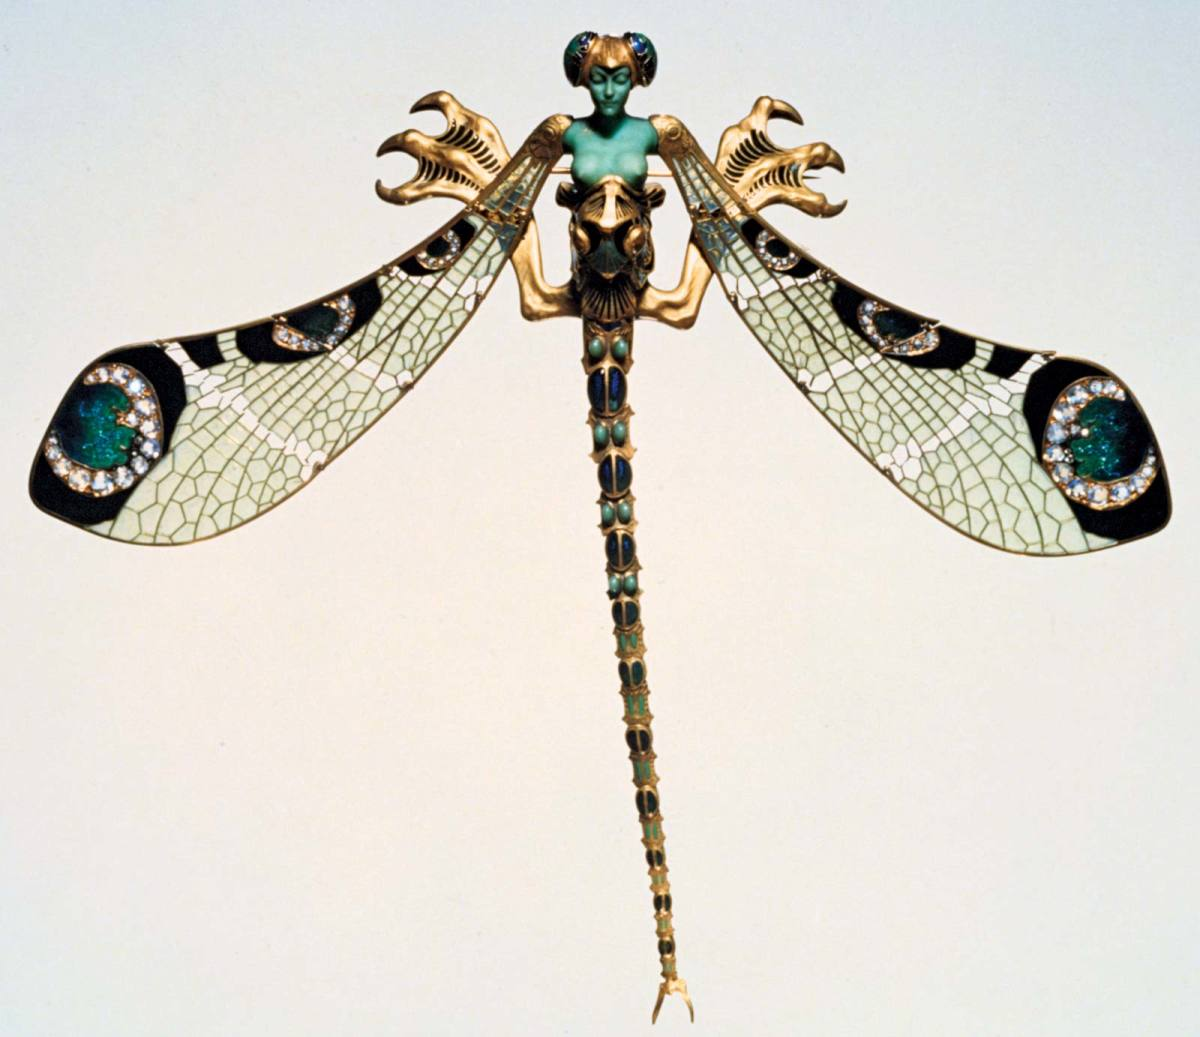 René Lalique Dragonfly Woman corsage ornament, made of gold, enamel, chrysoprase, moonstones, and diamonds, 1897-98.